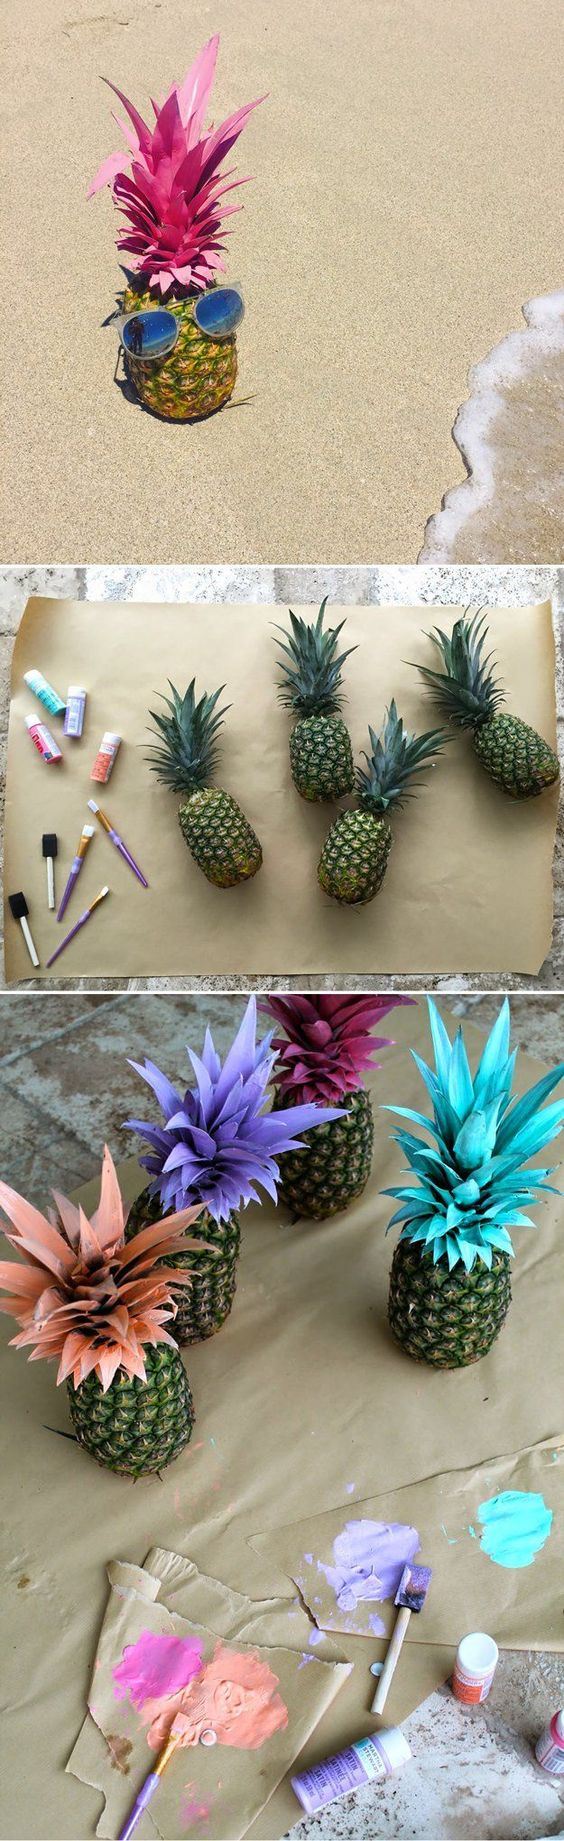 Tu biShevat deco with pineapples